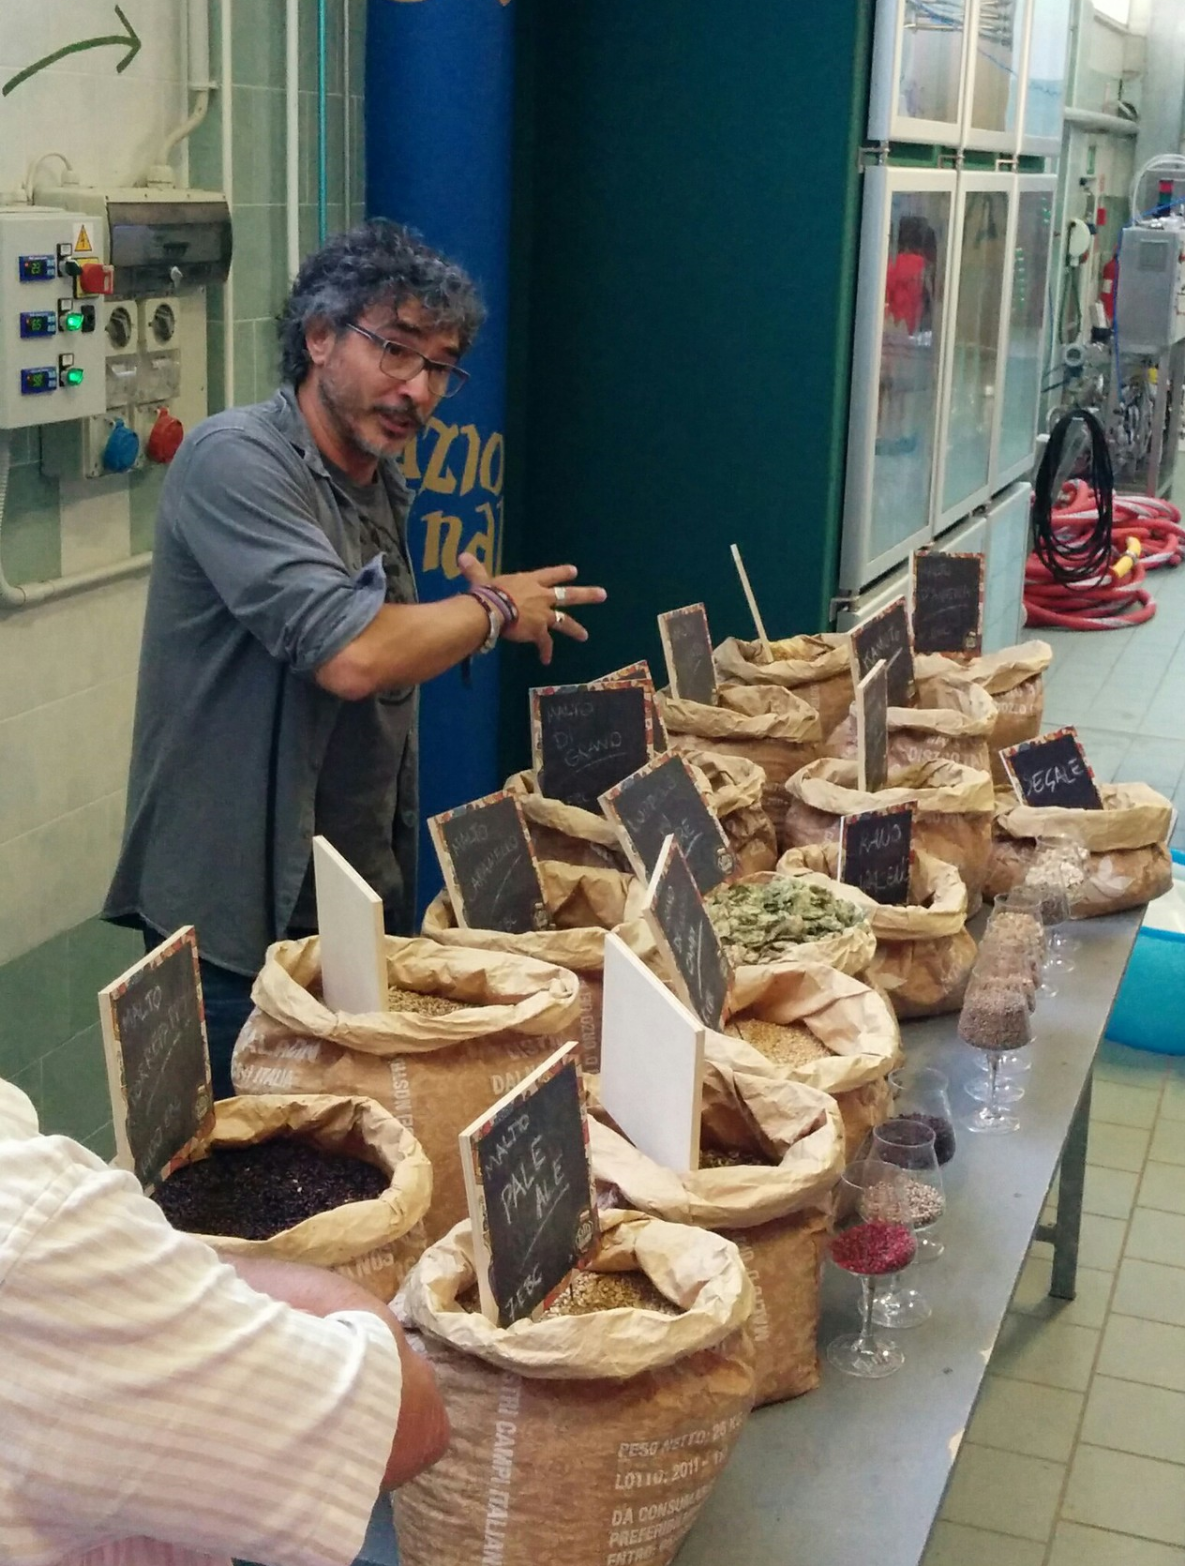 Piozzo (CN): the awesome Teo Musso of Baladin teaches us about good beer